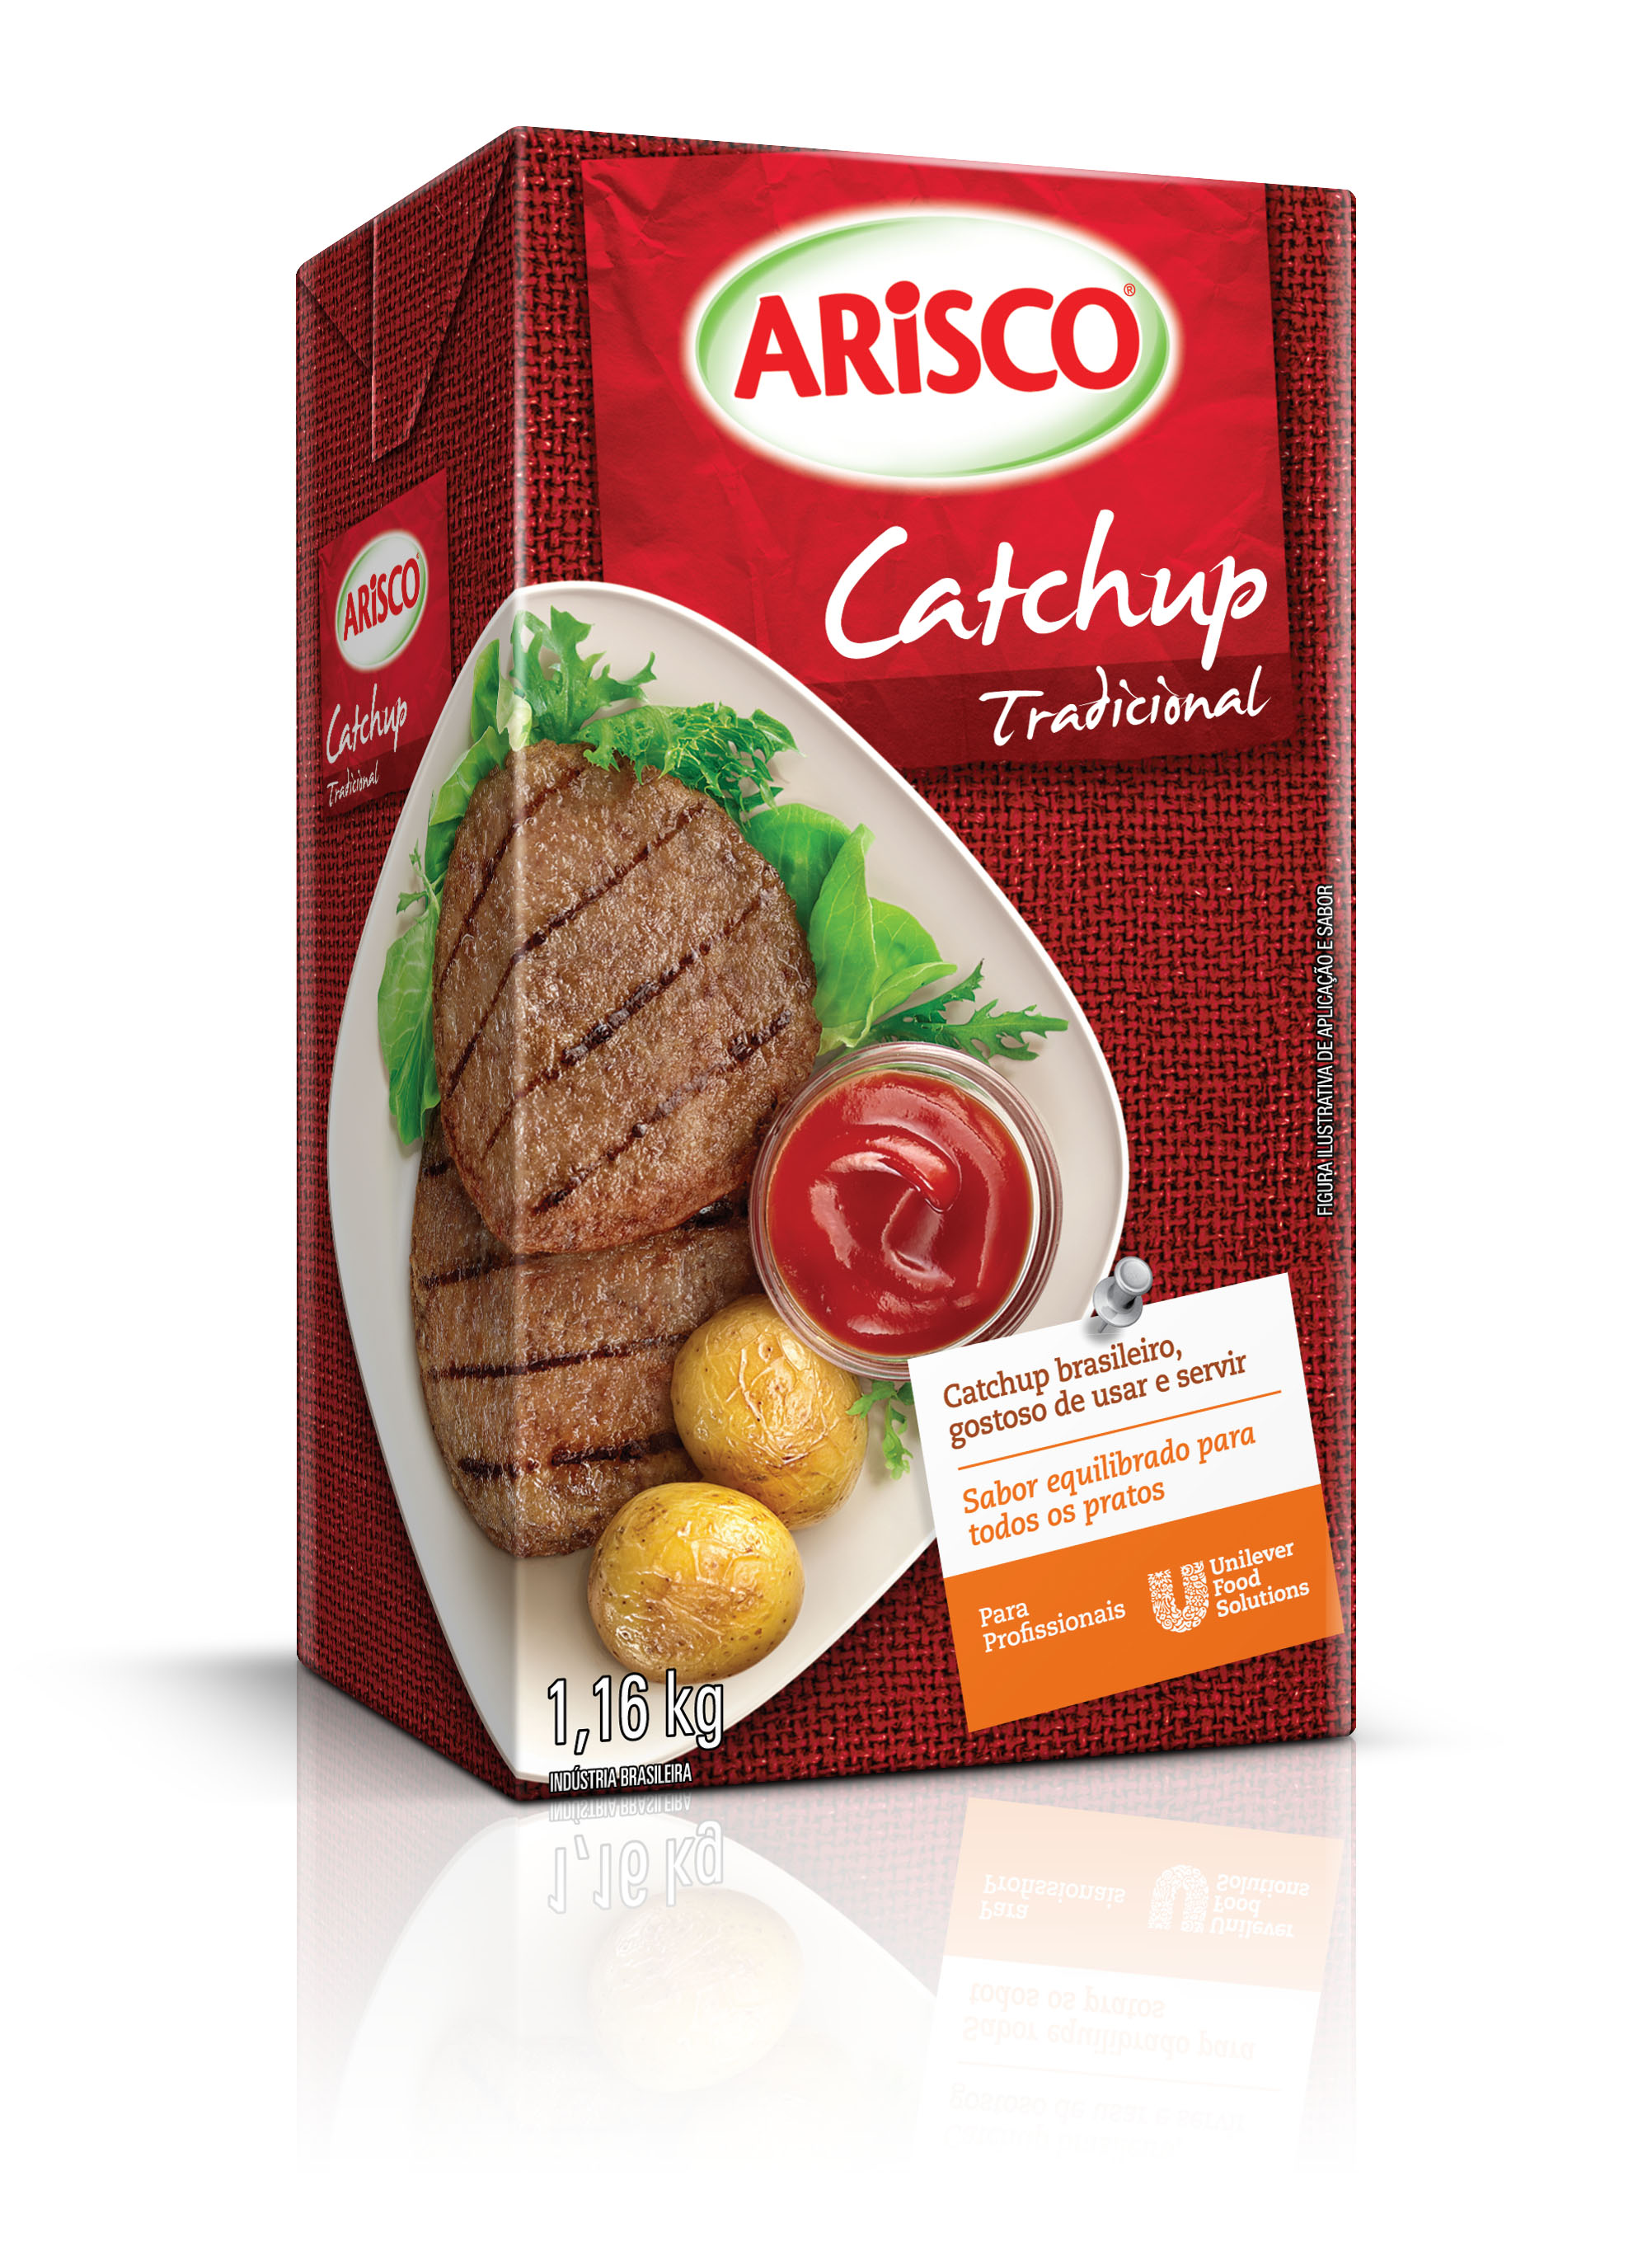 Catchup Arisco 1,16 kg